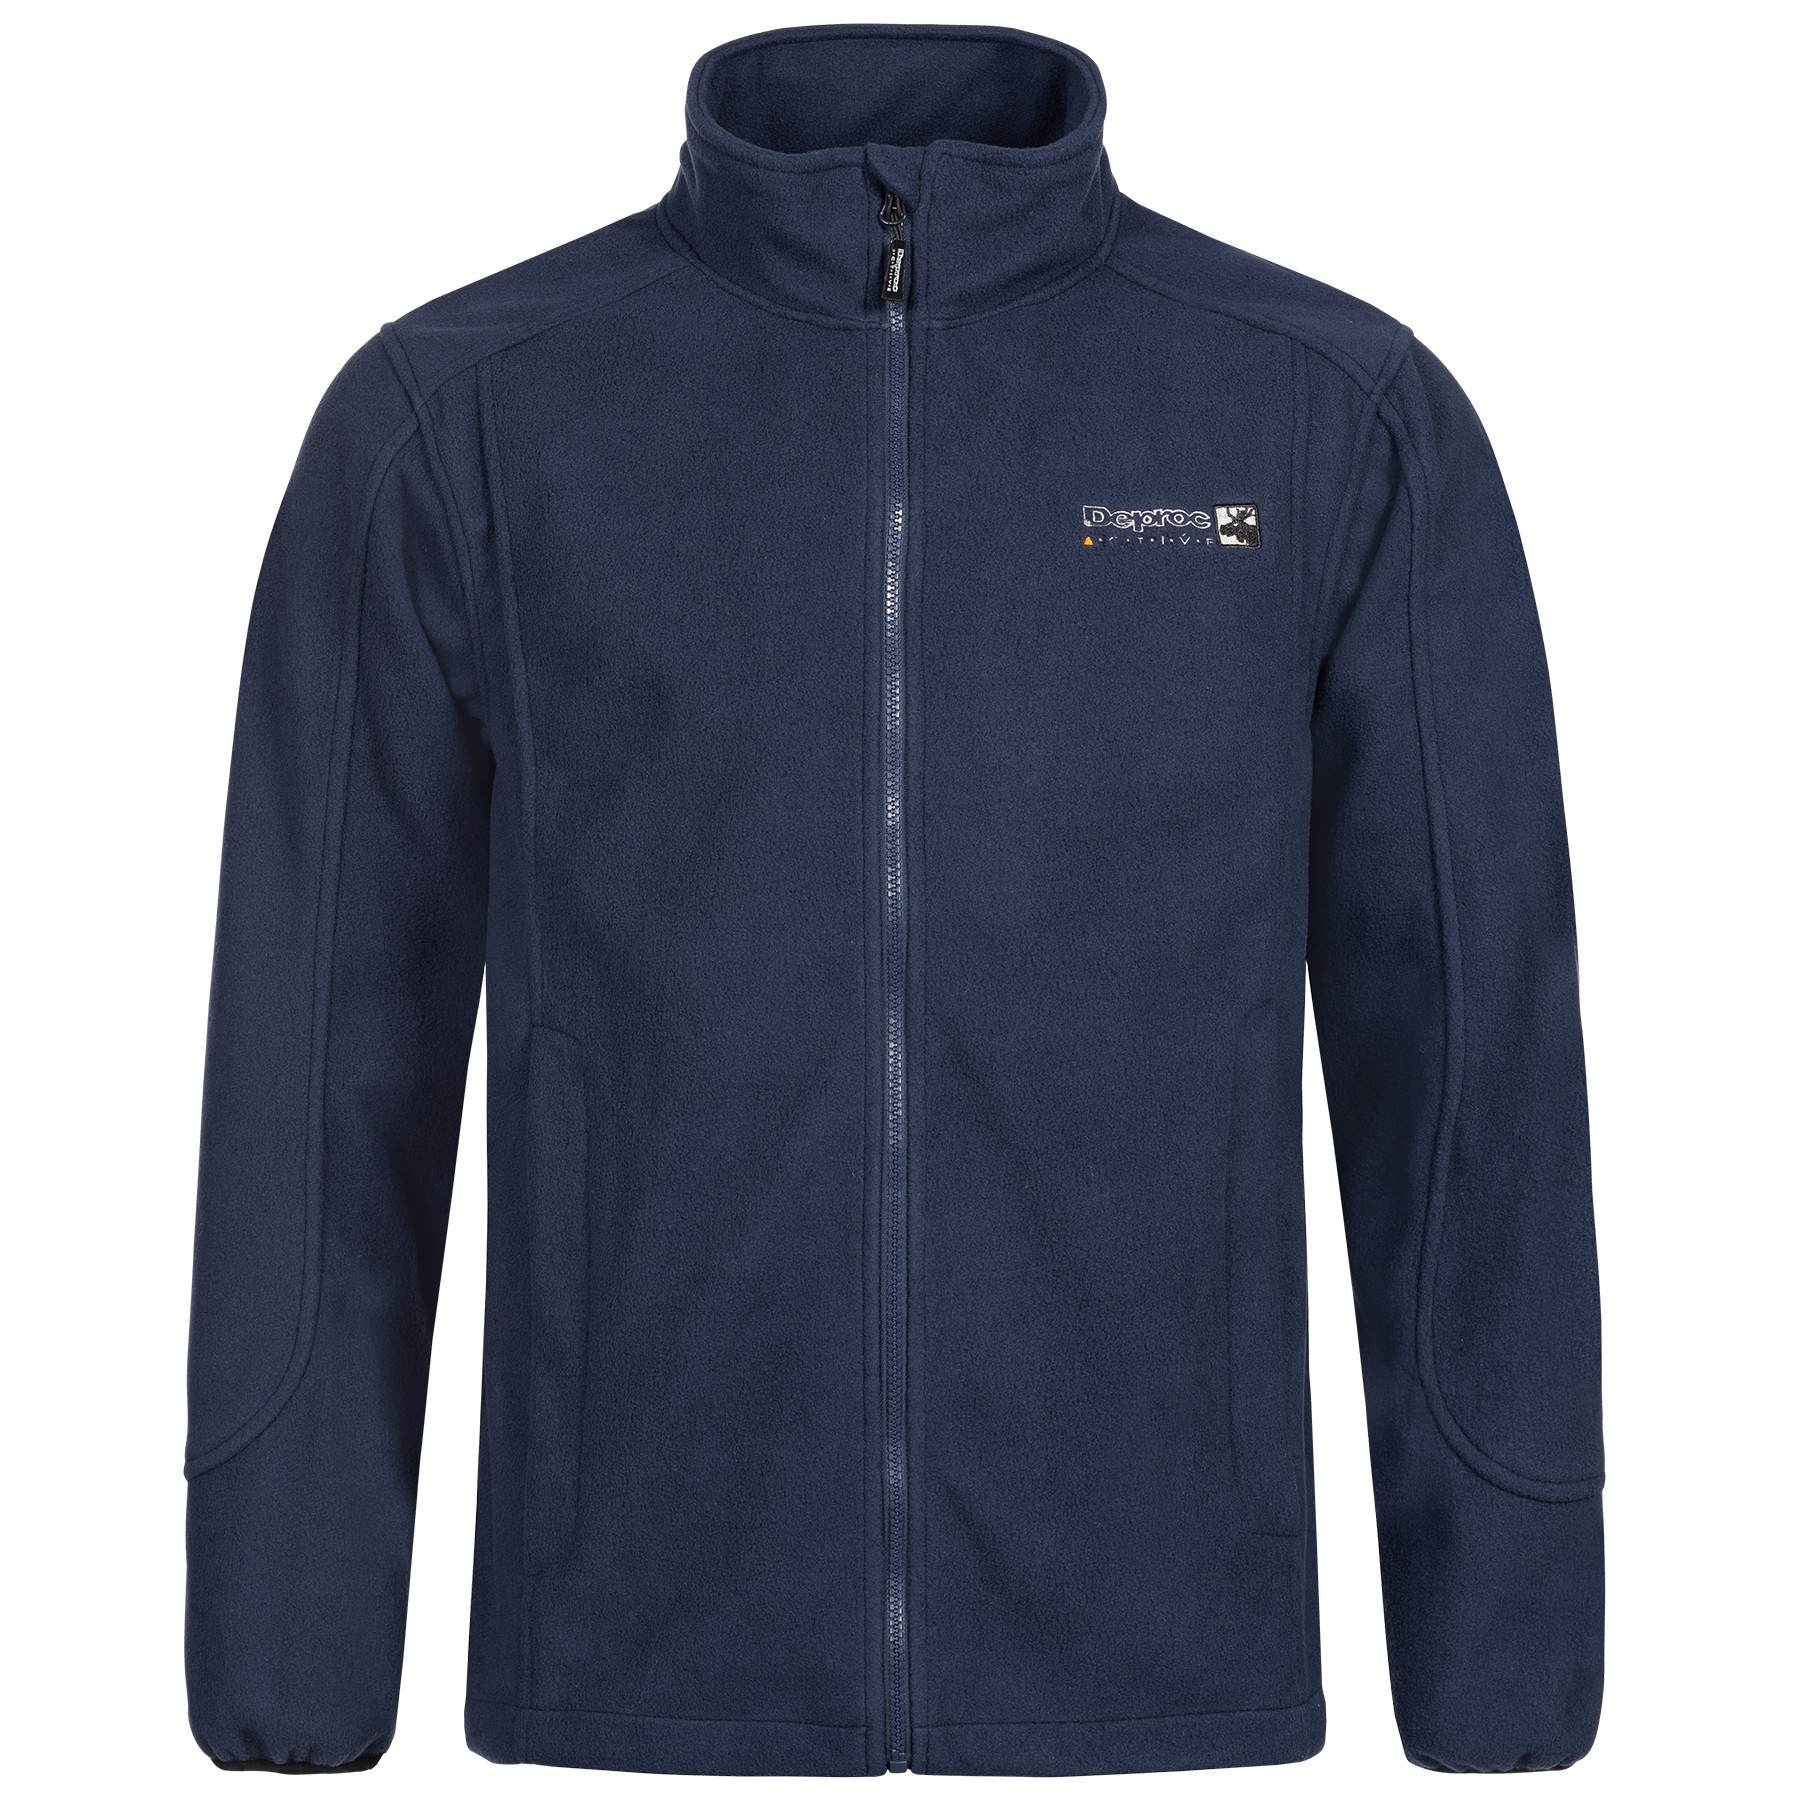 Fleecejacke Herren DEPROC ACTIVE WHITELAKE MEN navy front